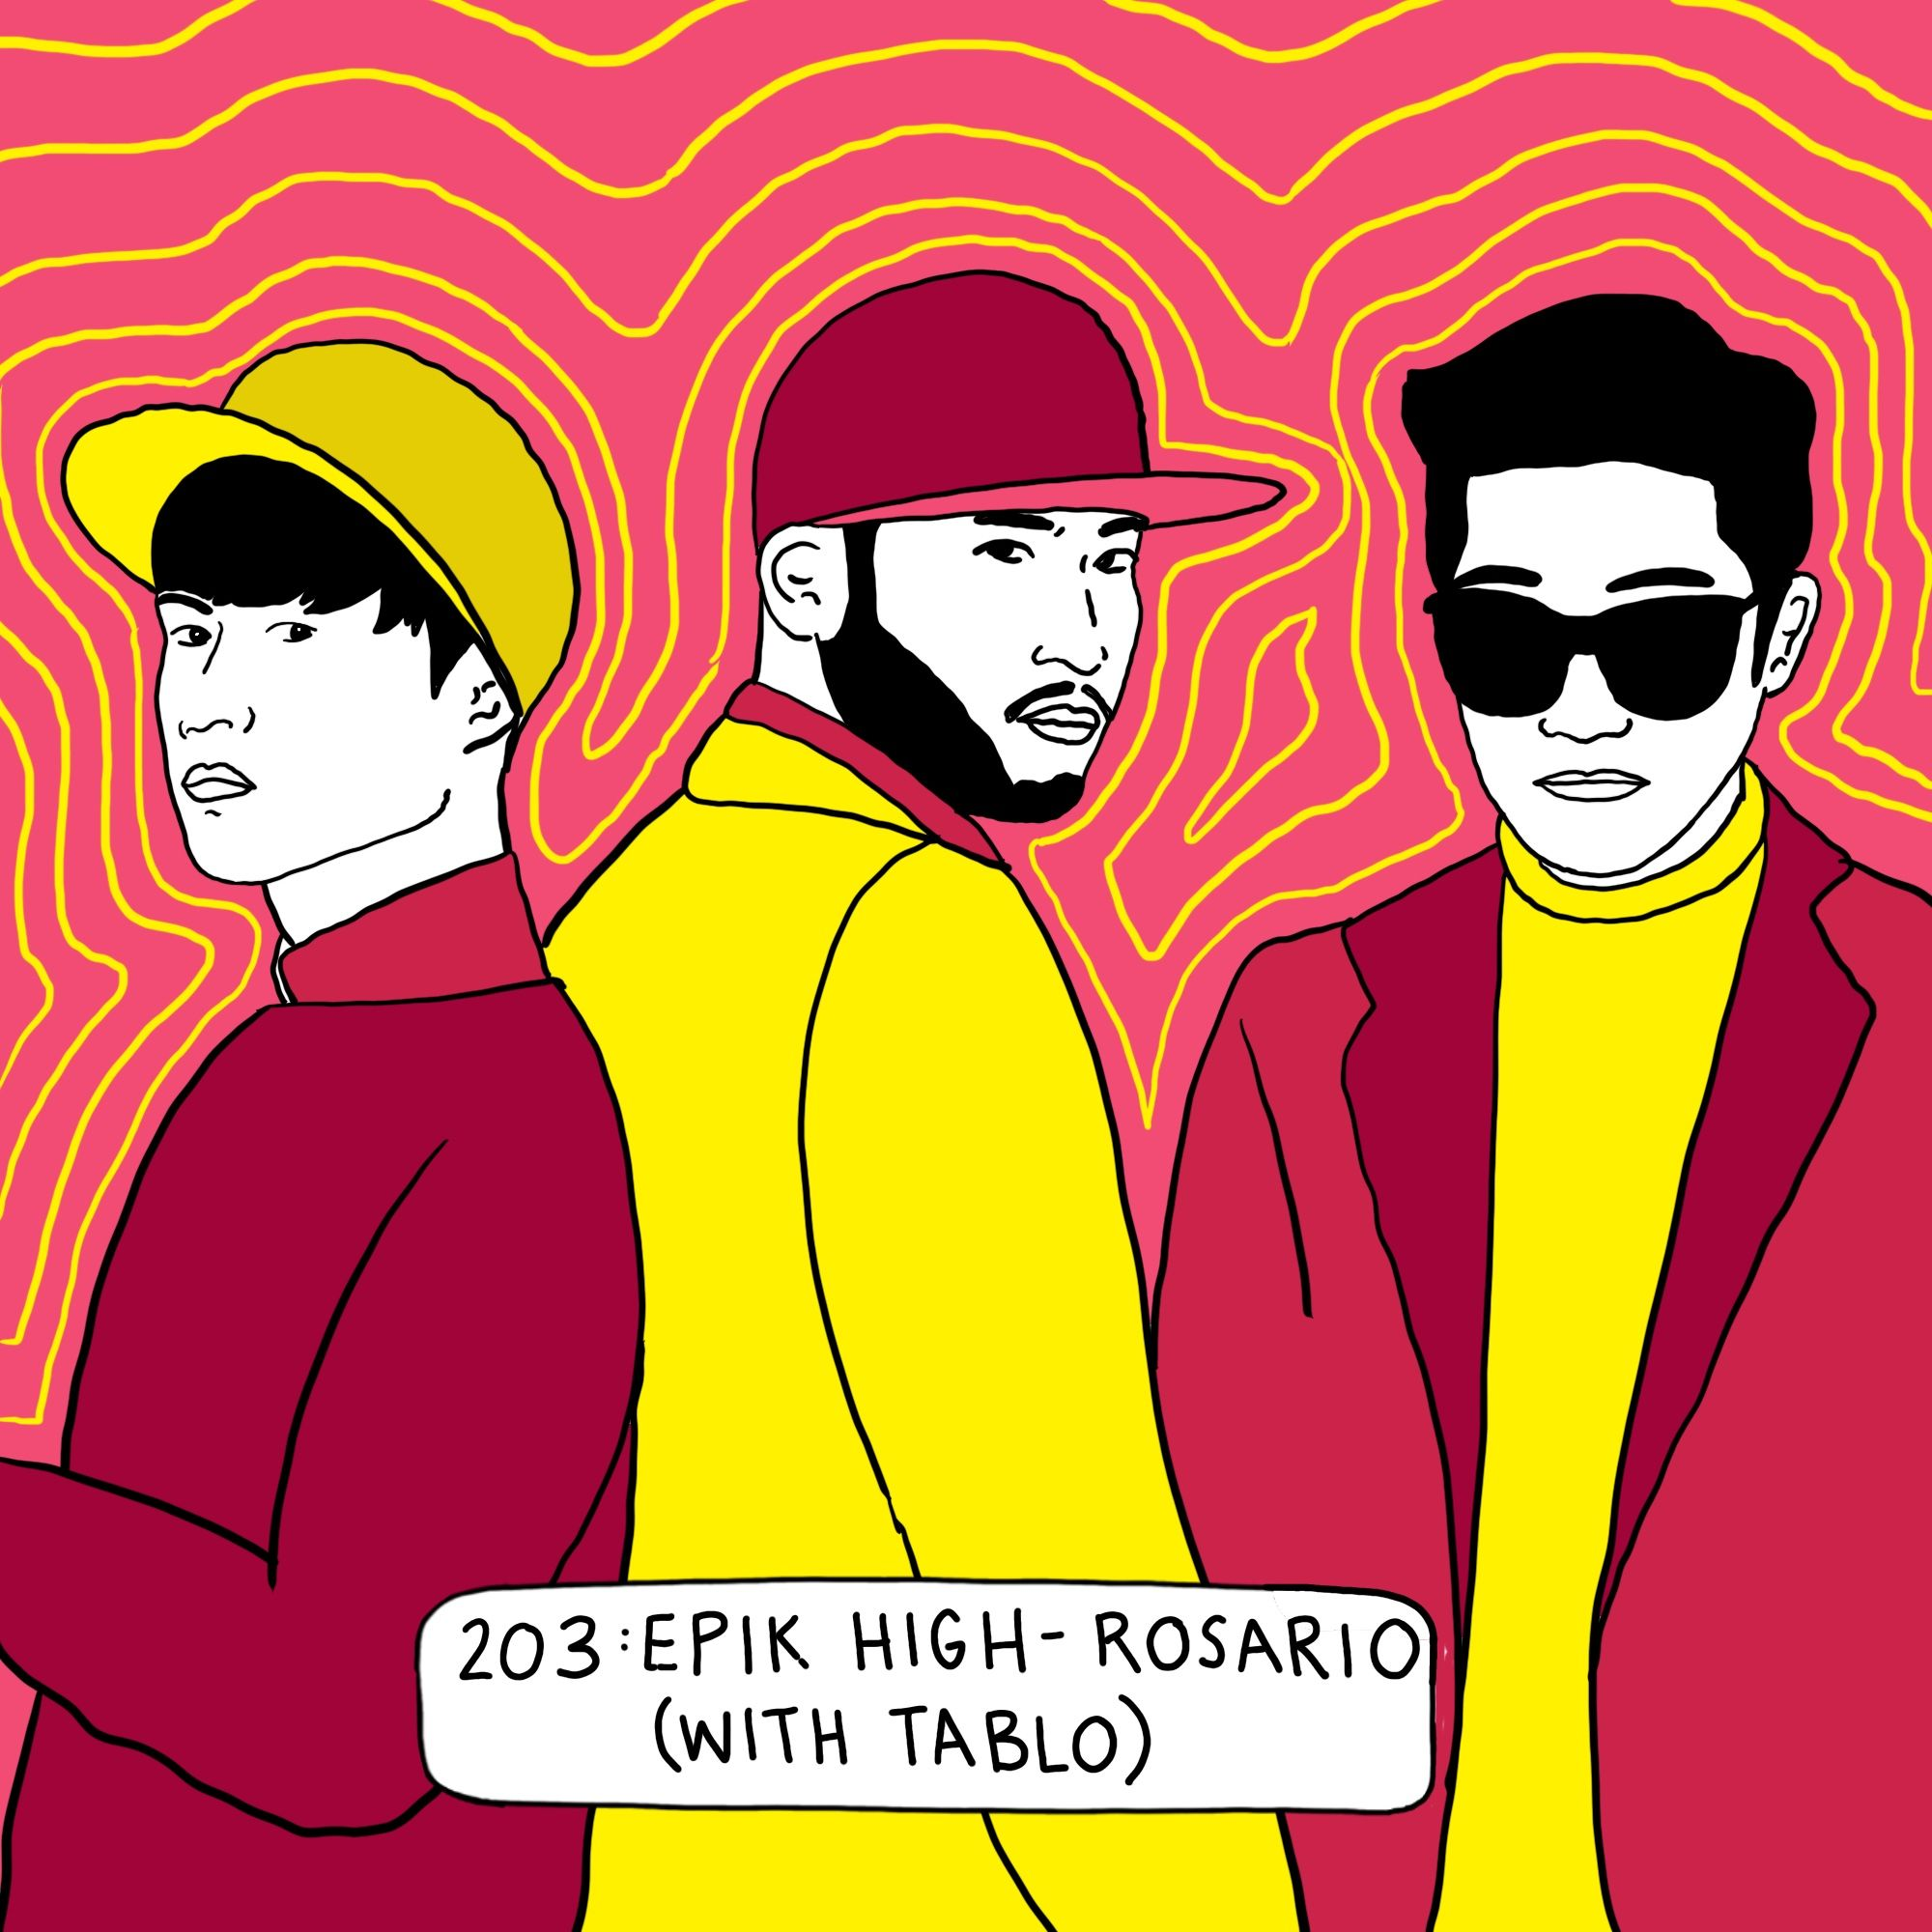 Epik High is our gateway into Korean hip hop (with Tablo)